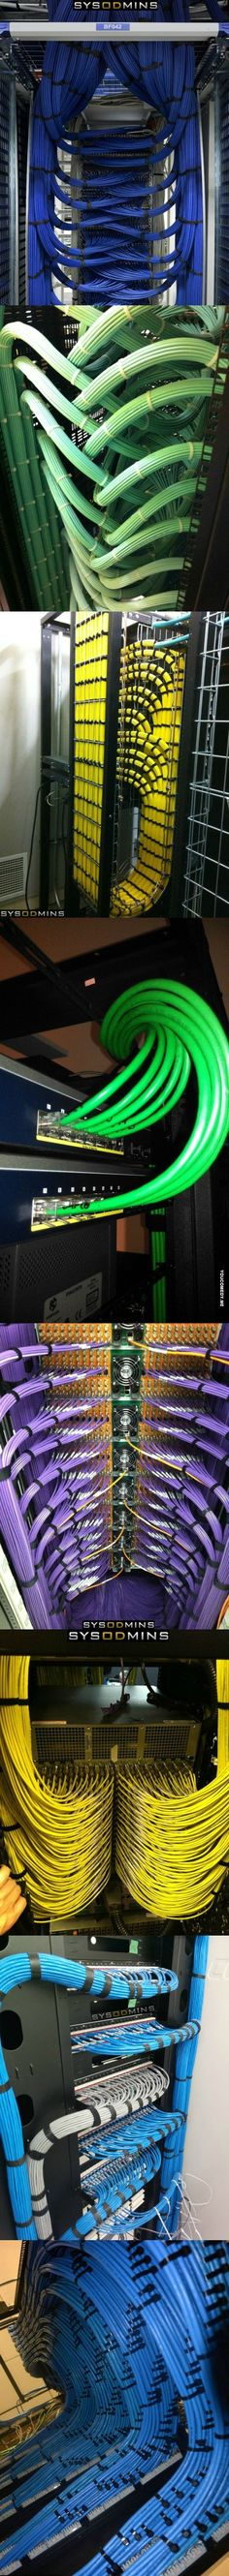 This company did a great job with all of these installs. Great cable management and network runs.